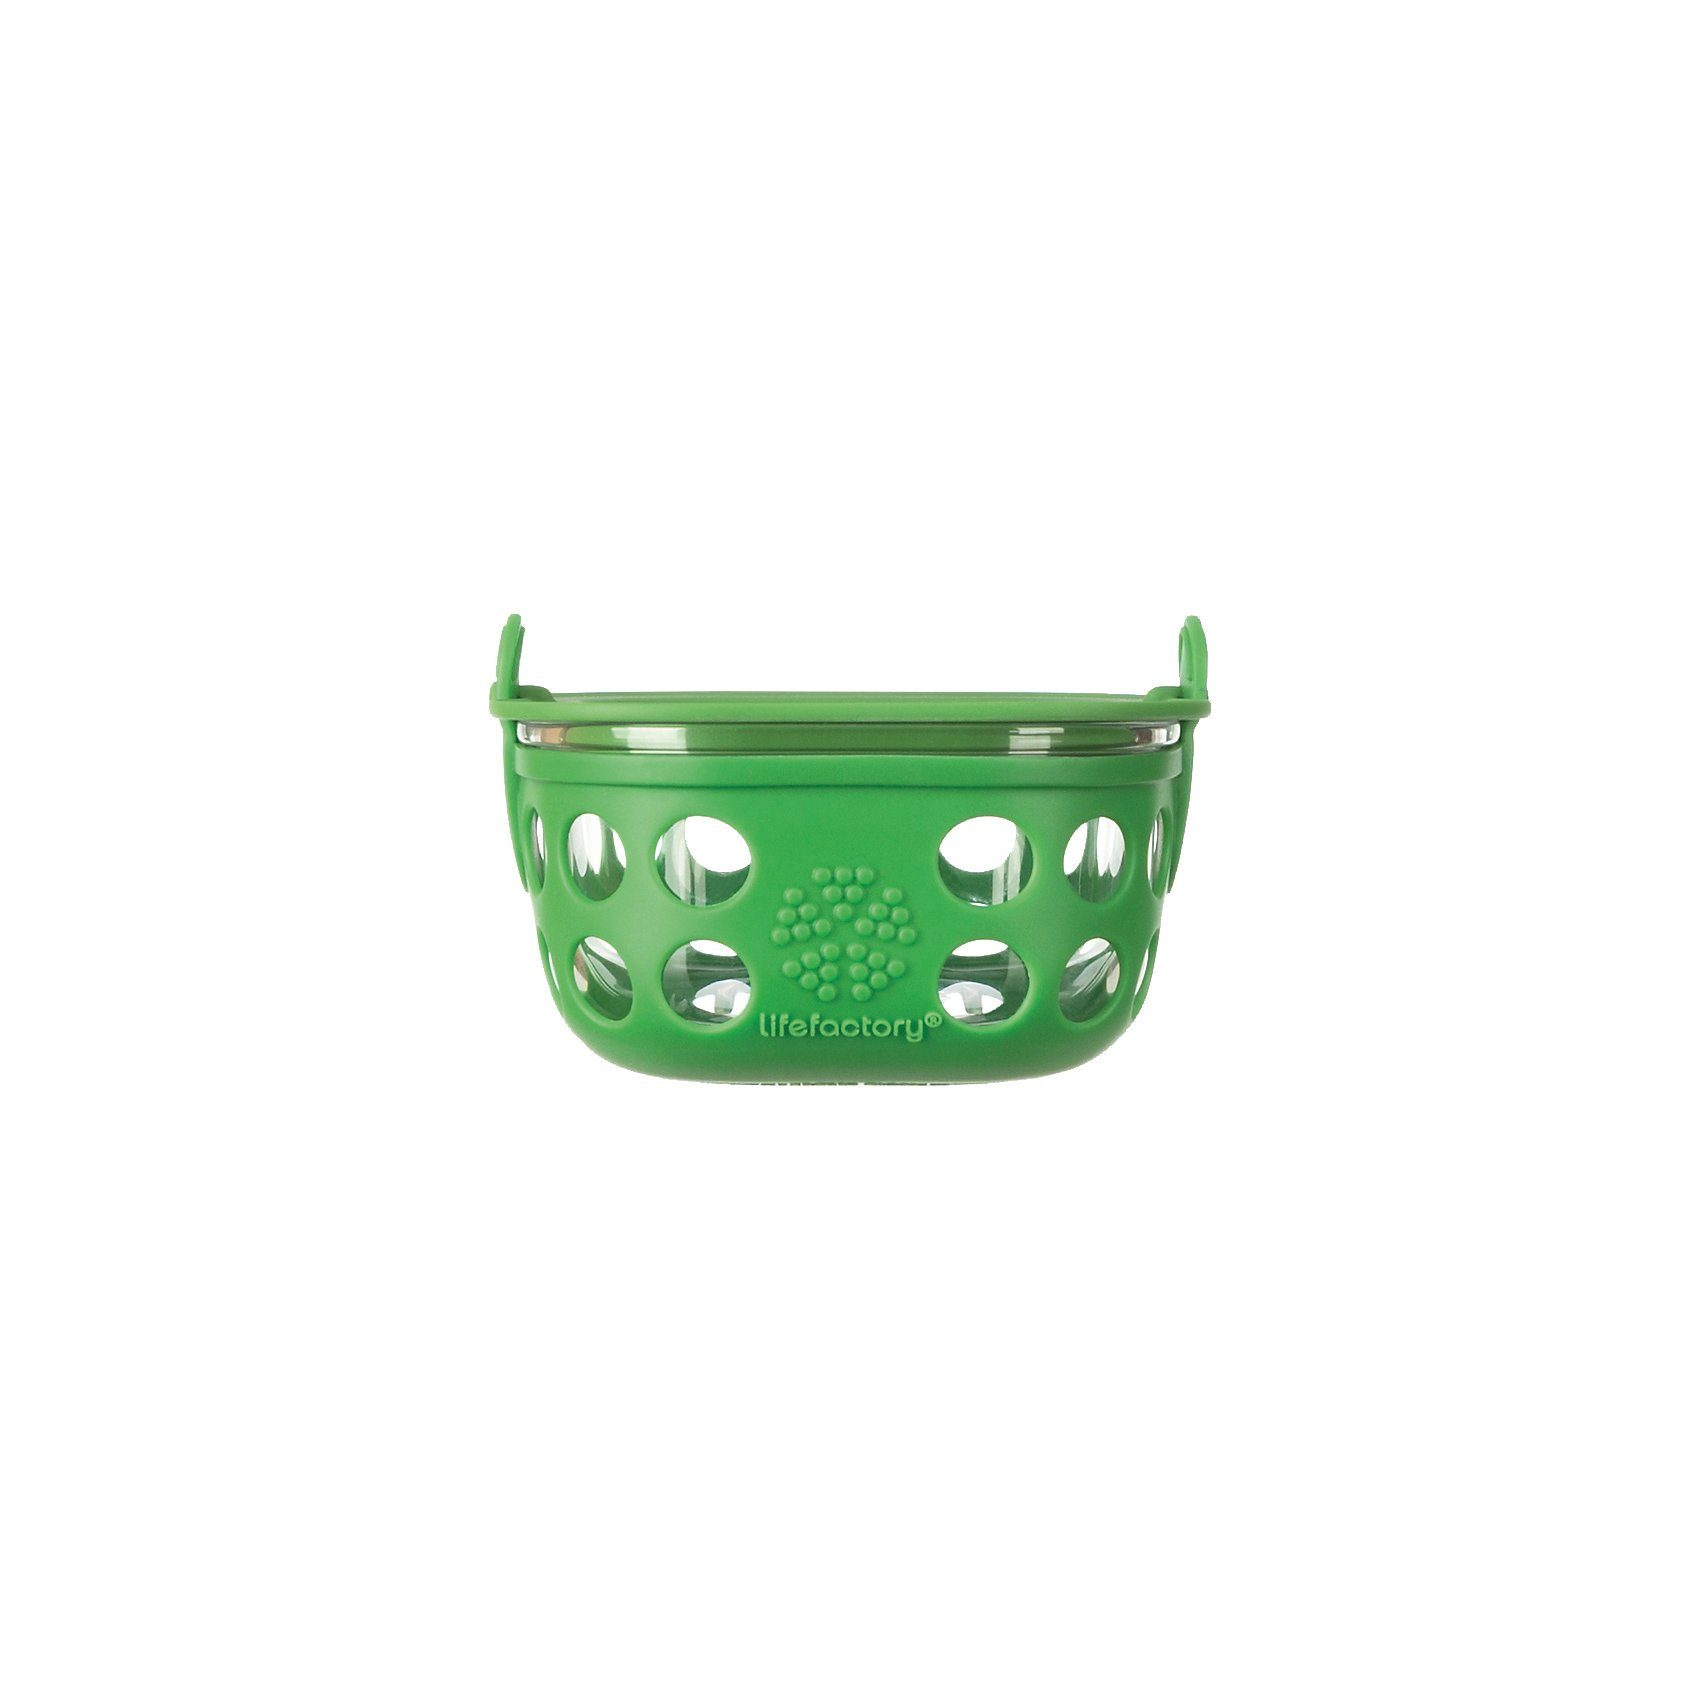 Lifefactory Lunchbox Glas green, 240 ml